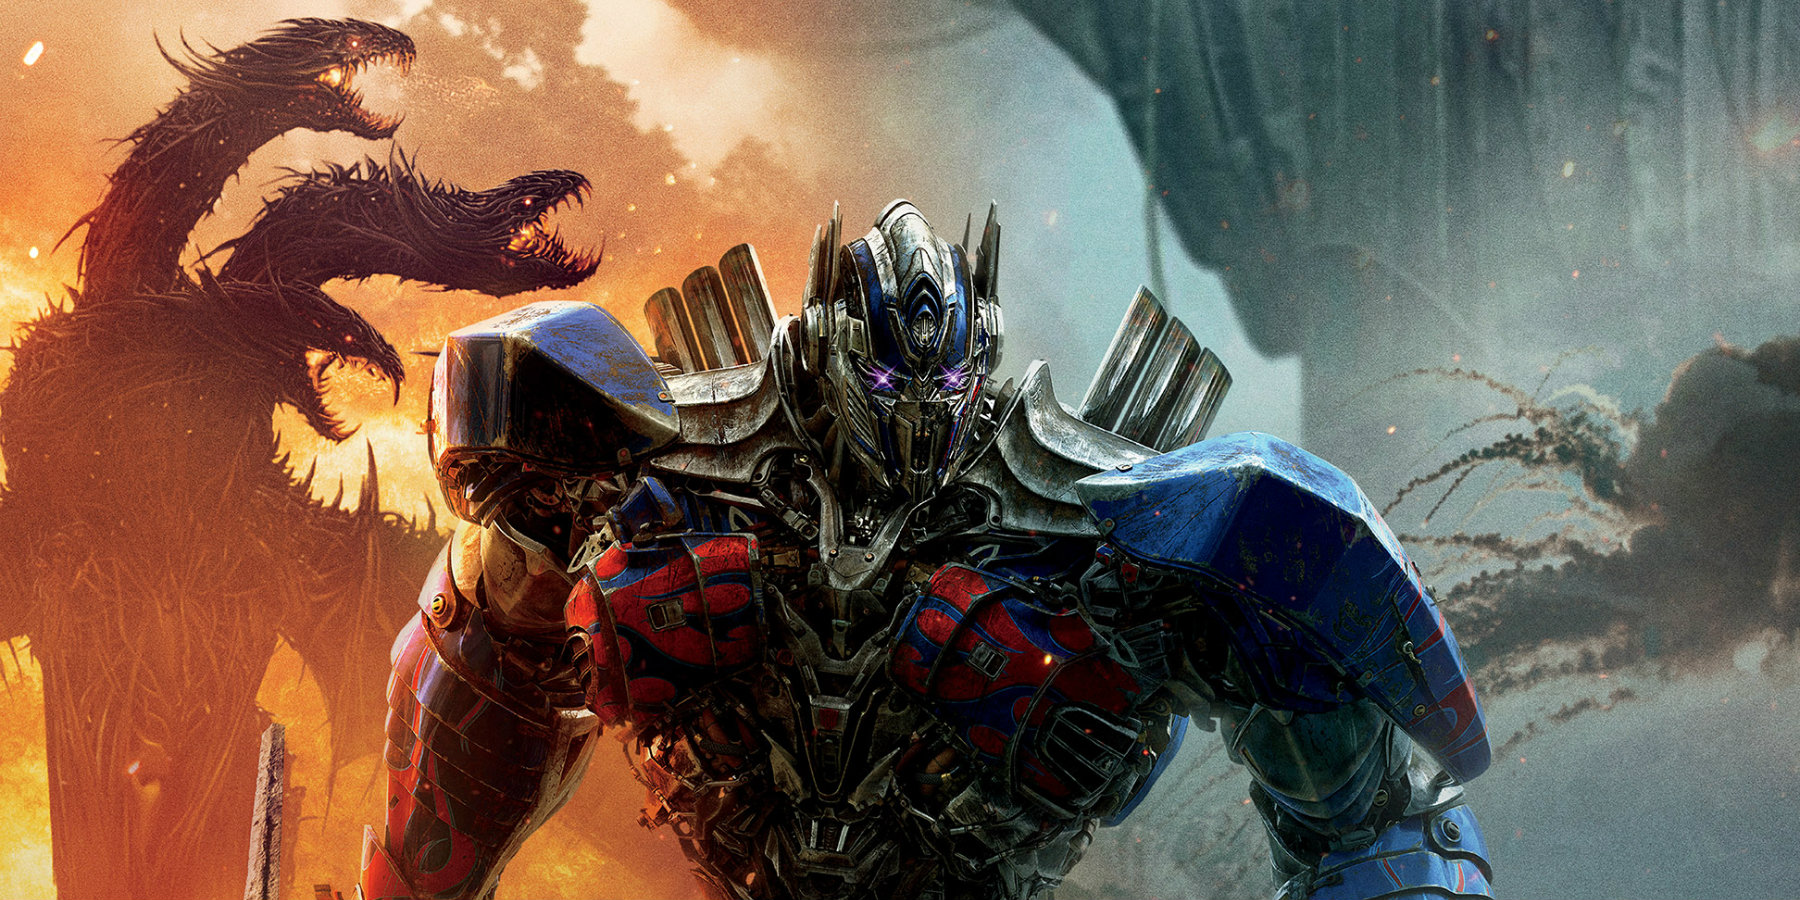 transformers 5 easter eggs amp movie secrets screen rant